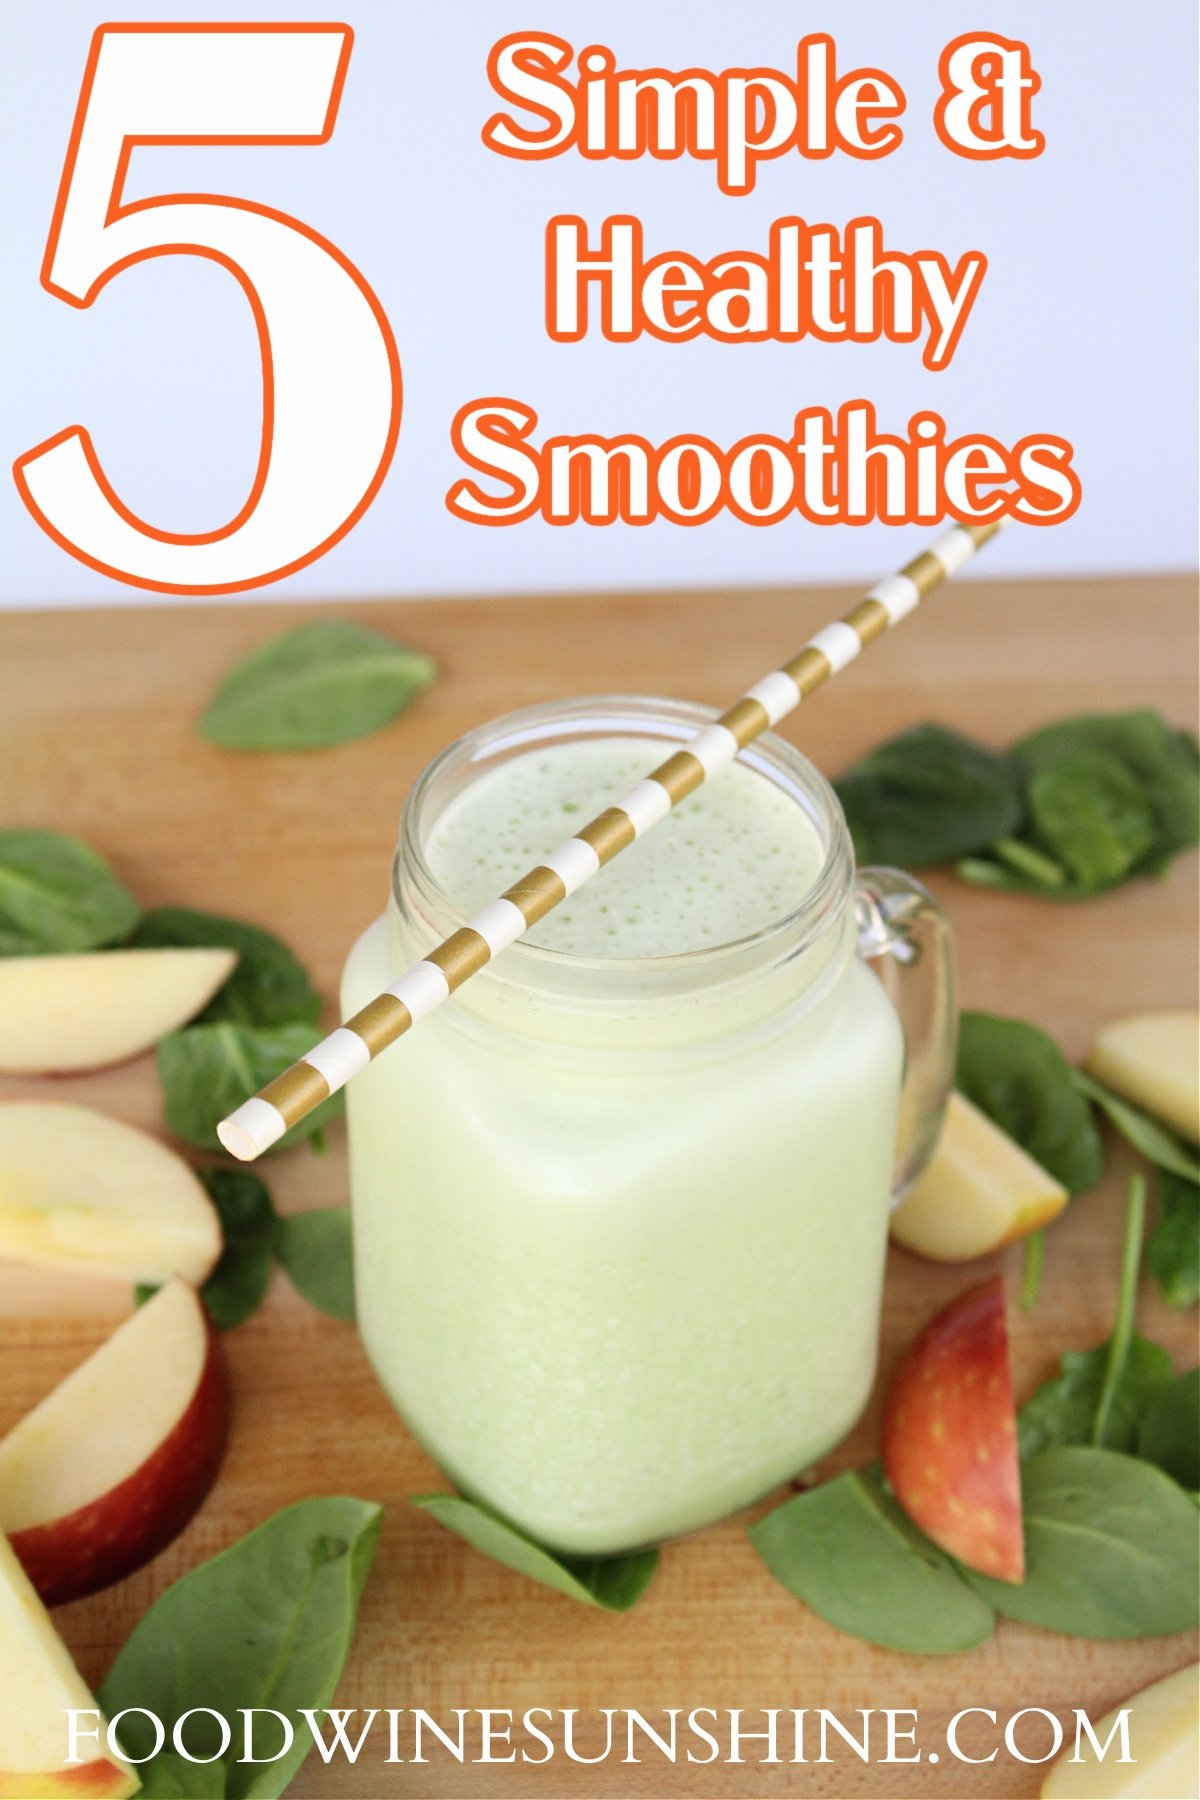 Simple and Healthy Smoothies